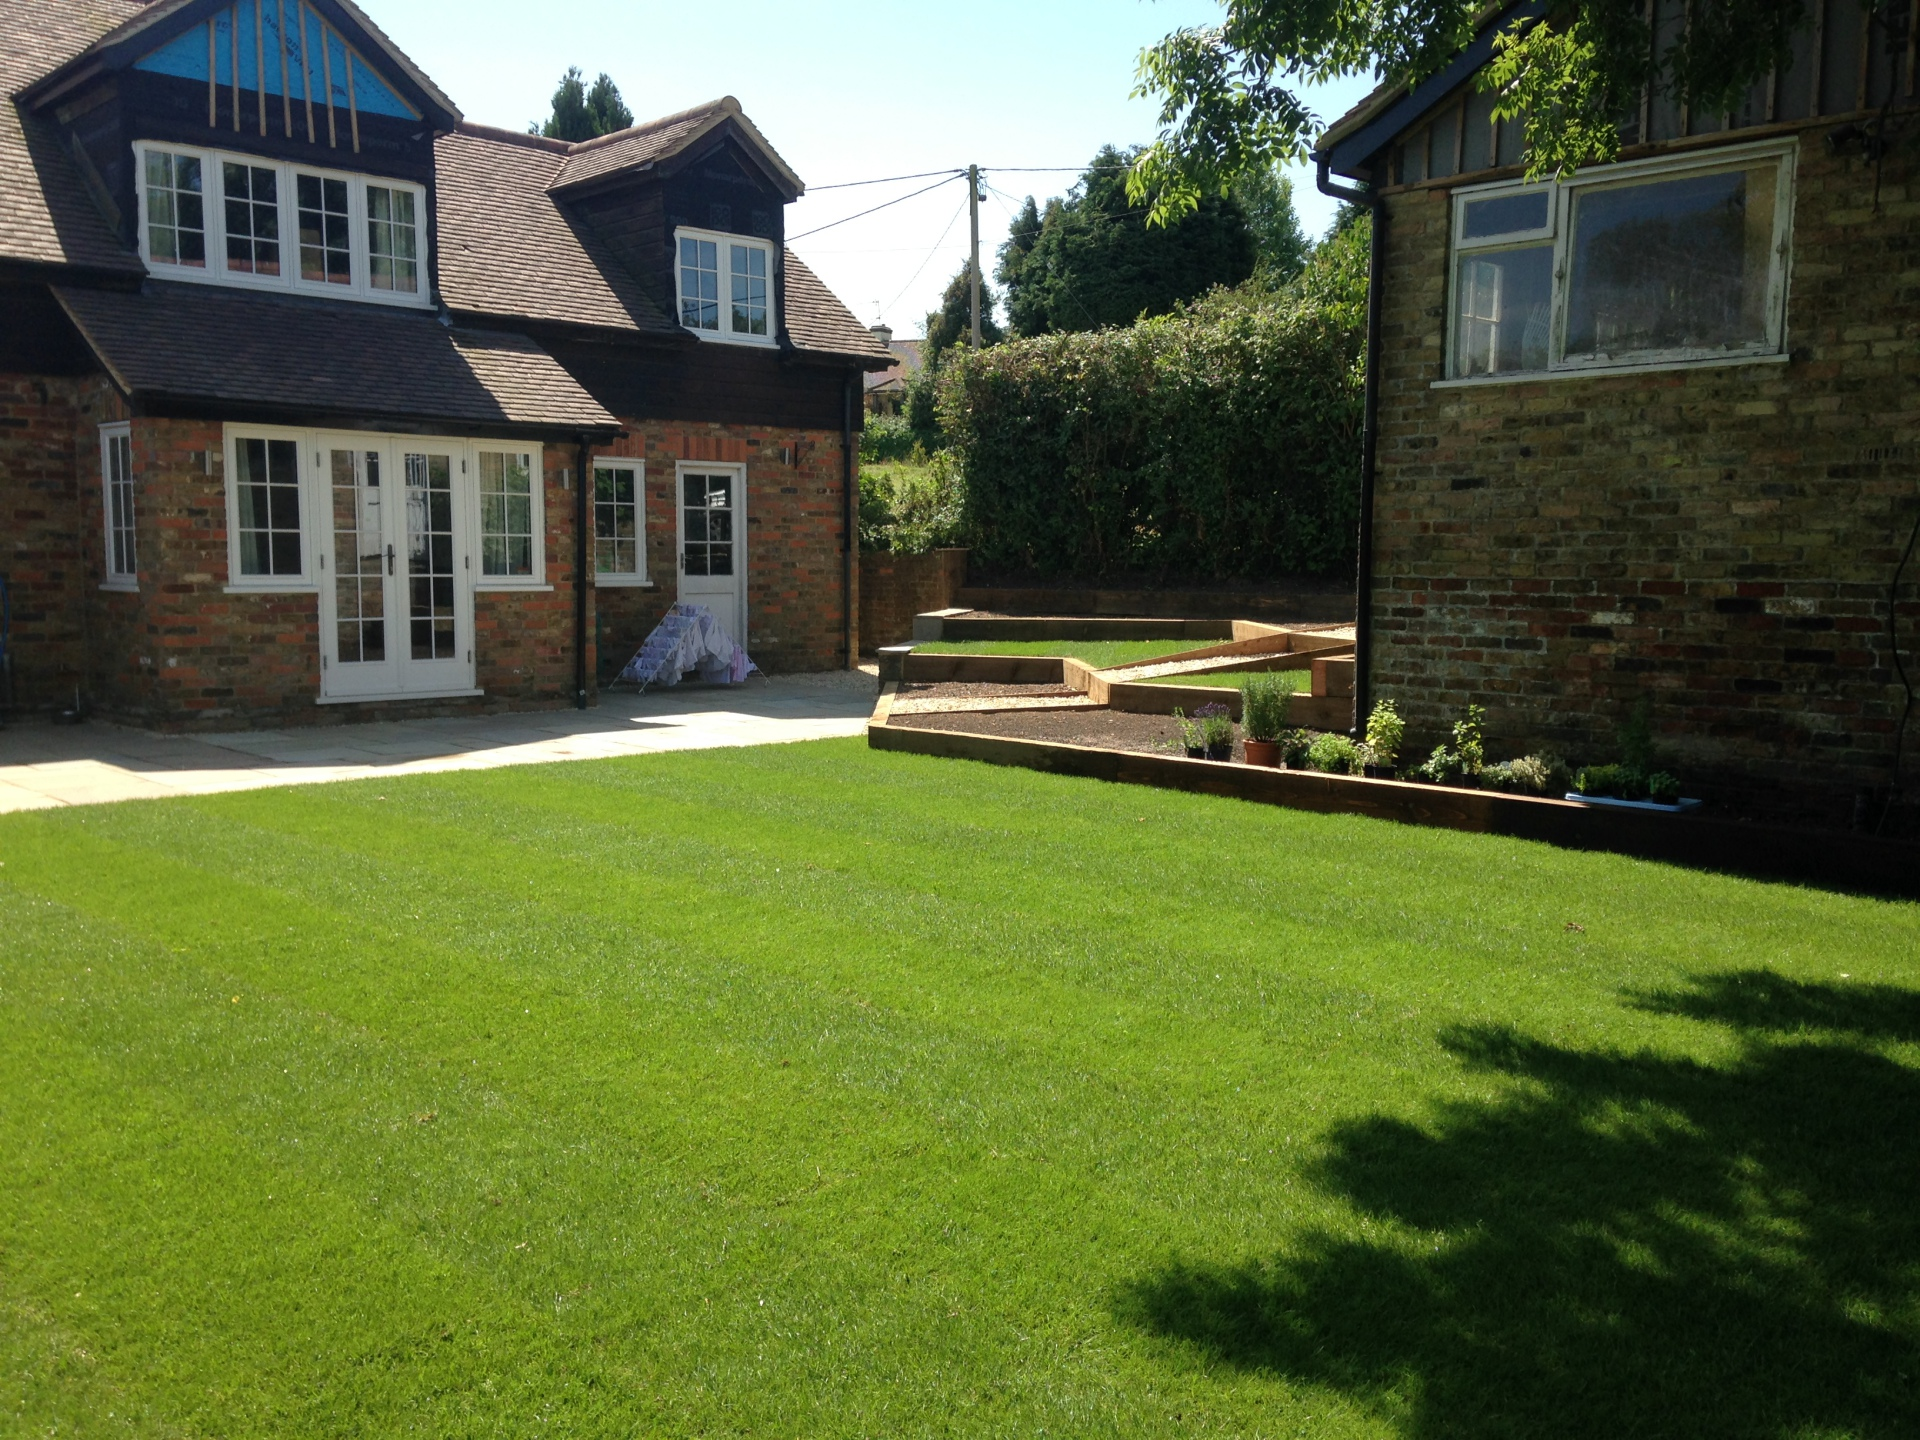 Landscape - Lawn and sitting area